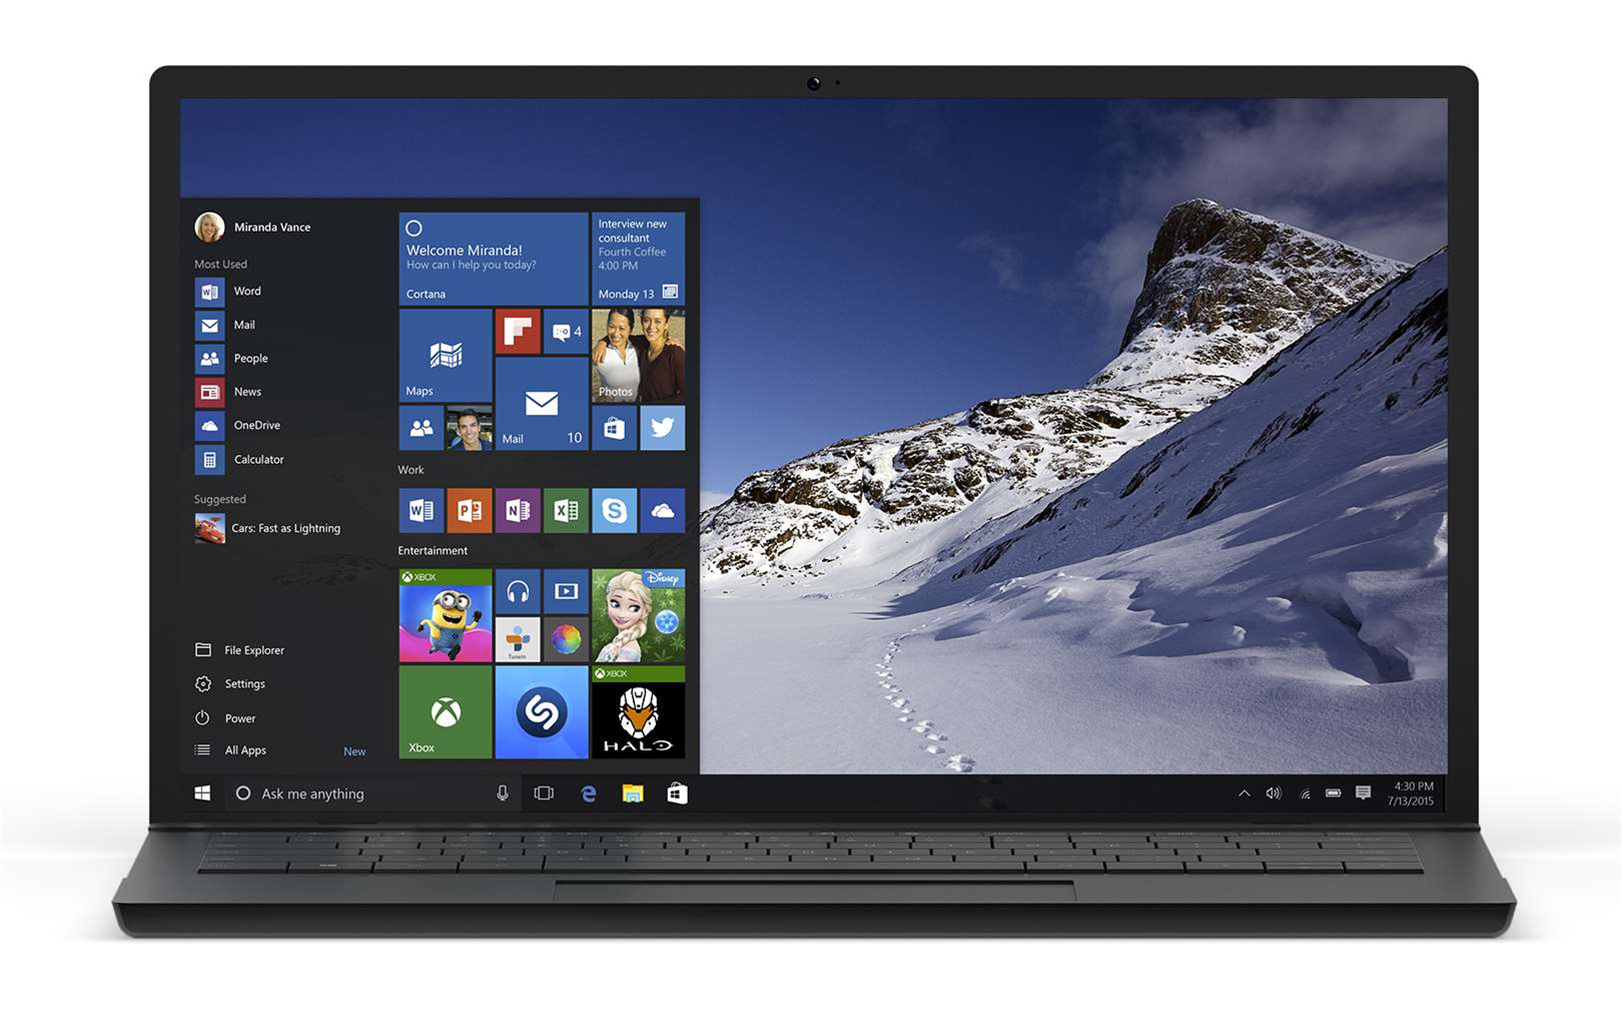 The features you'll lose when upgrading to Windows 10